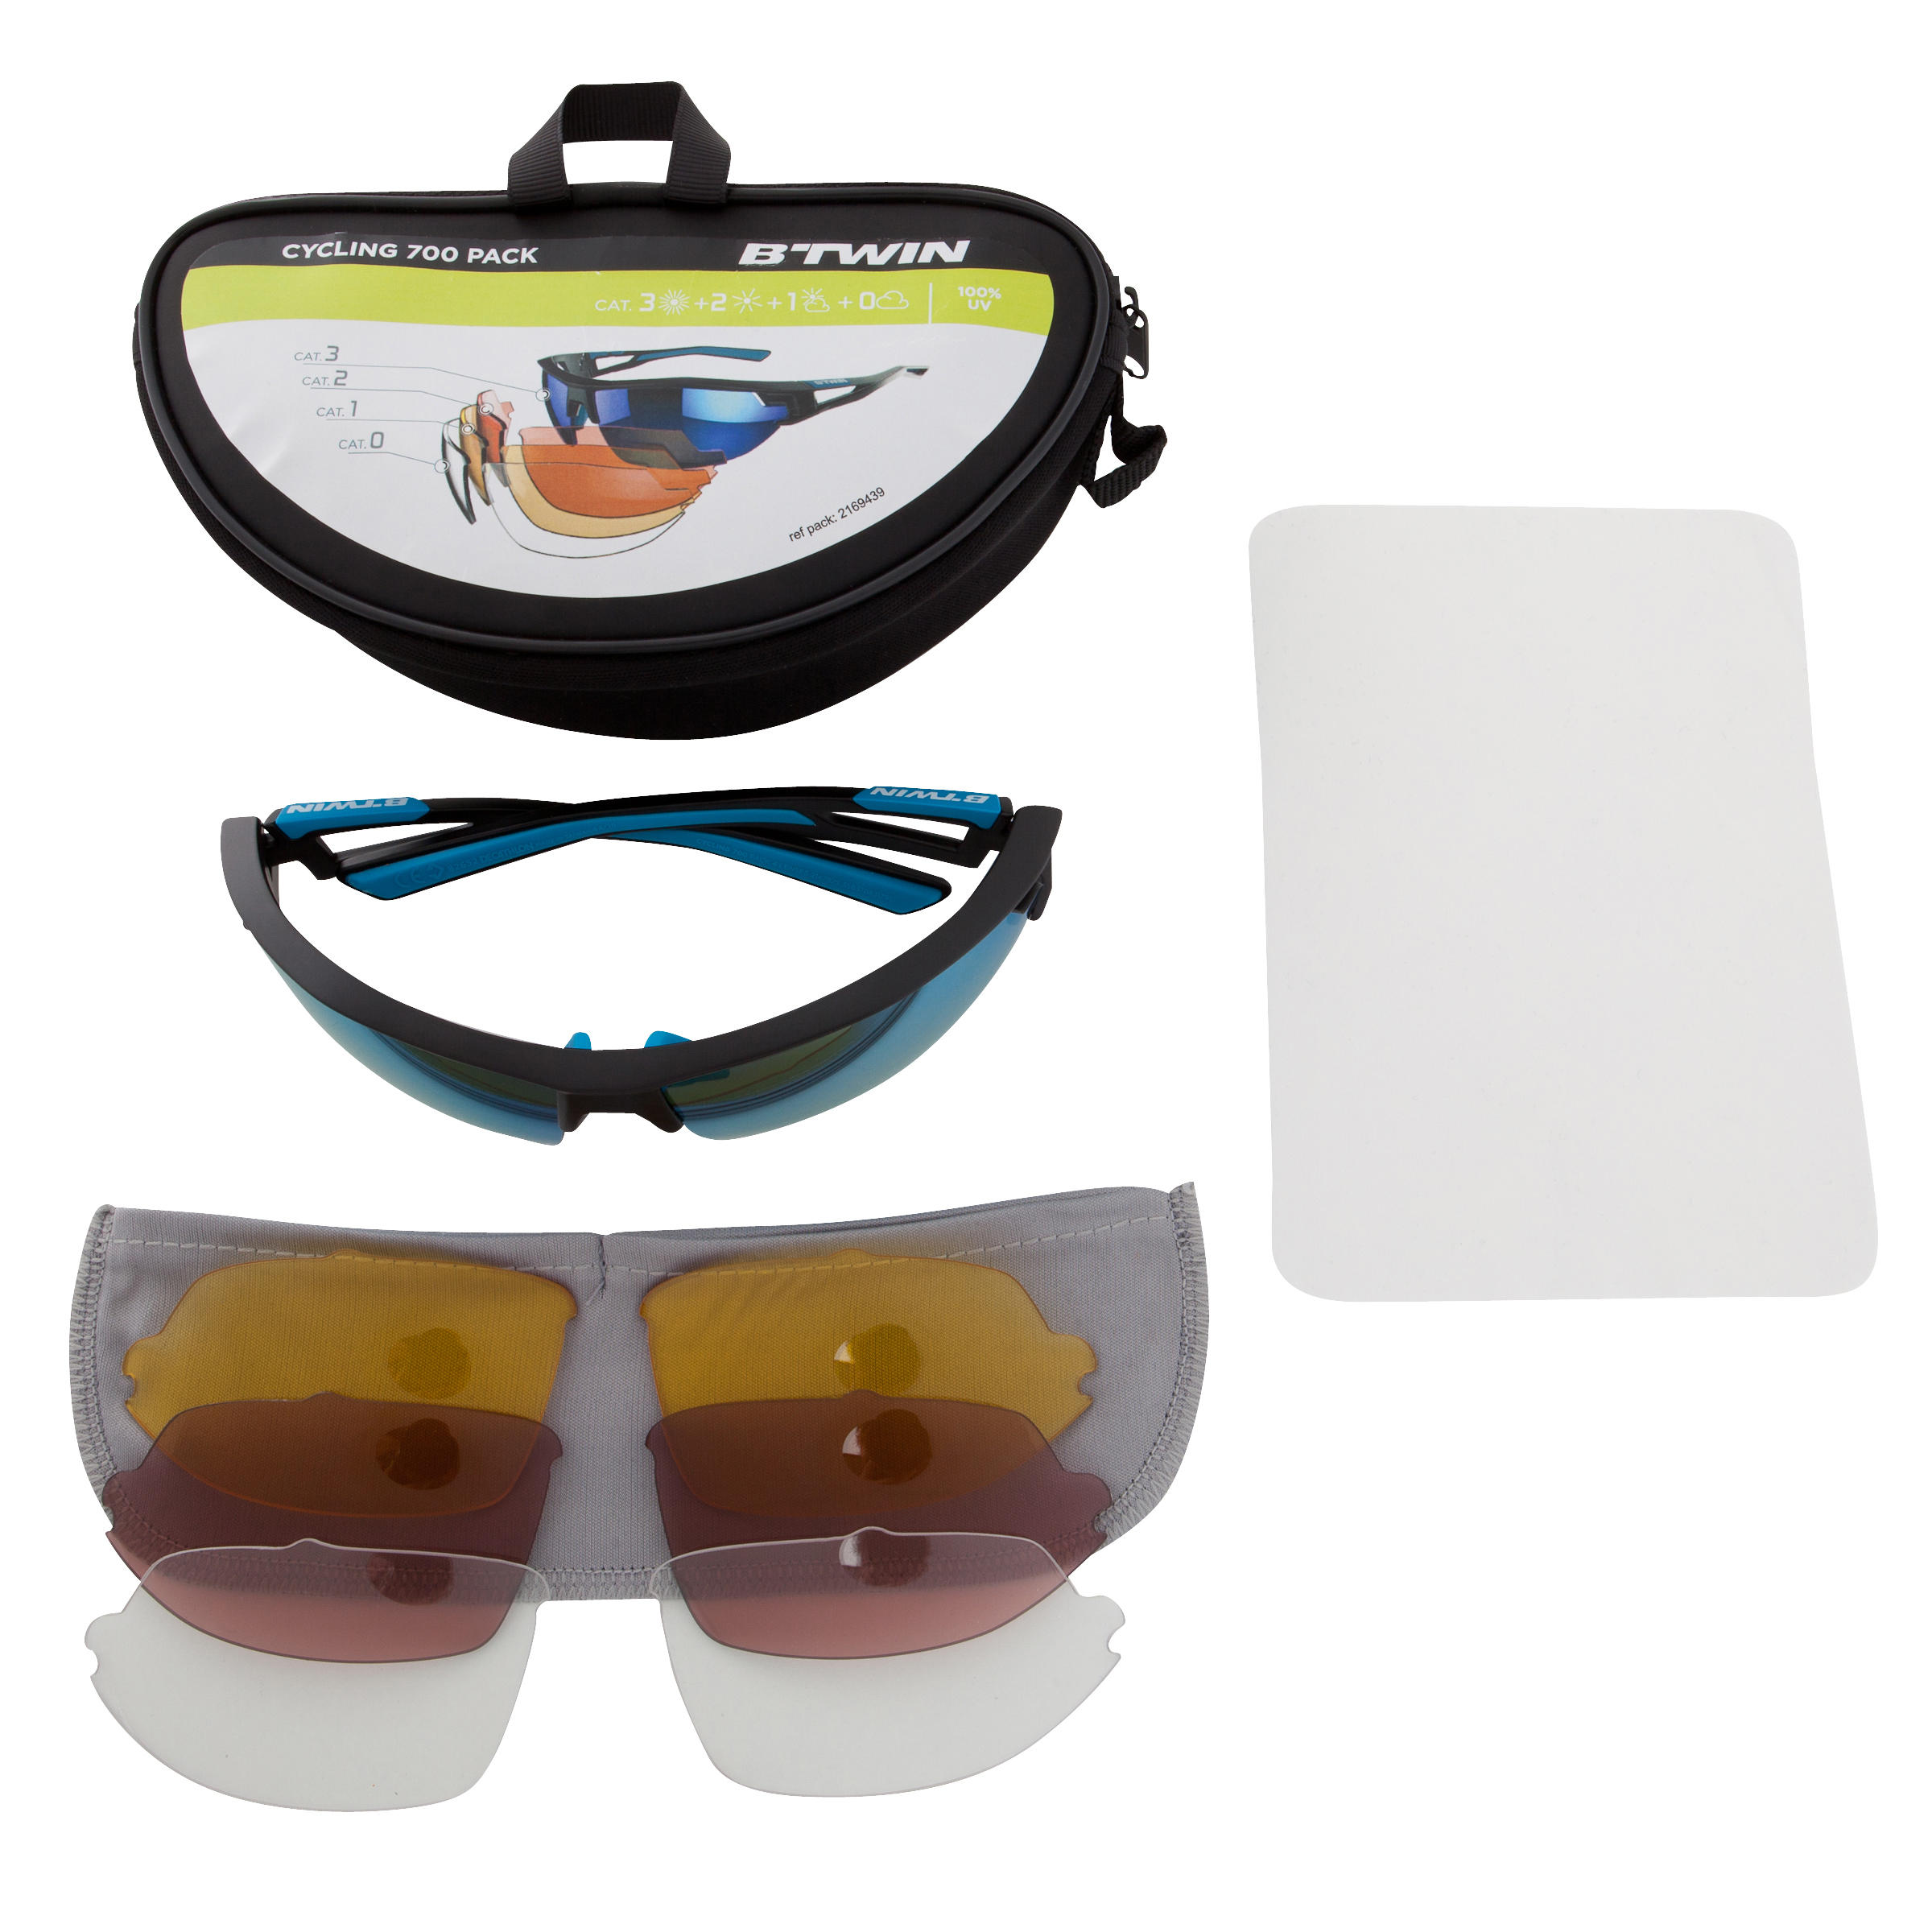 XC 100 Adult Cycling Sunglasses Pack with 4 Interchangeable Lenses - Blue